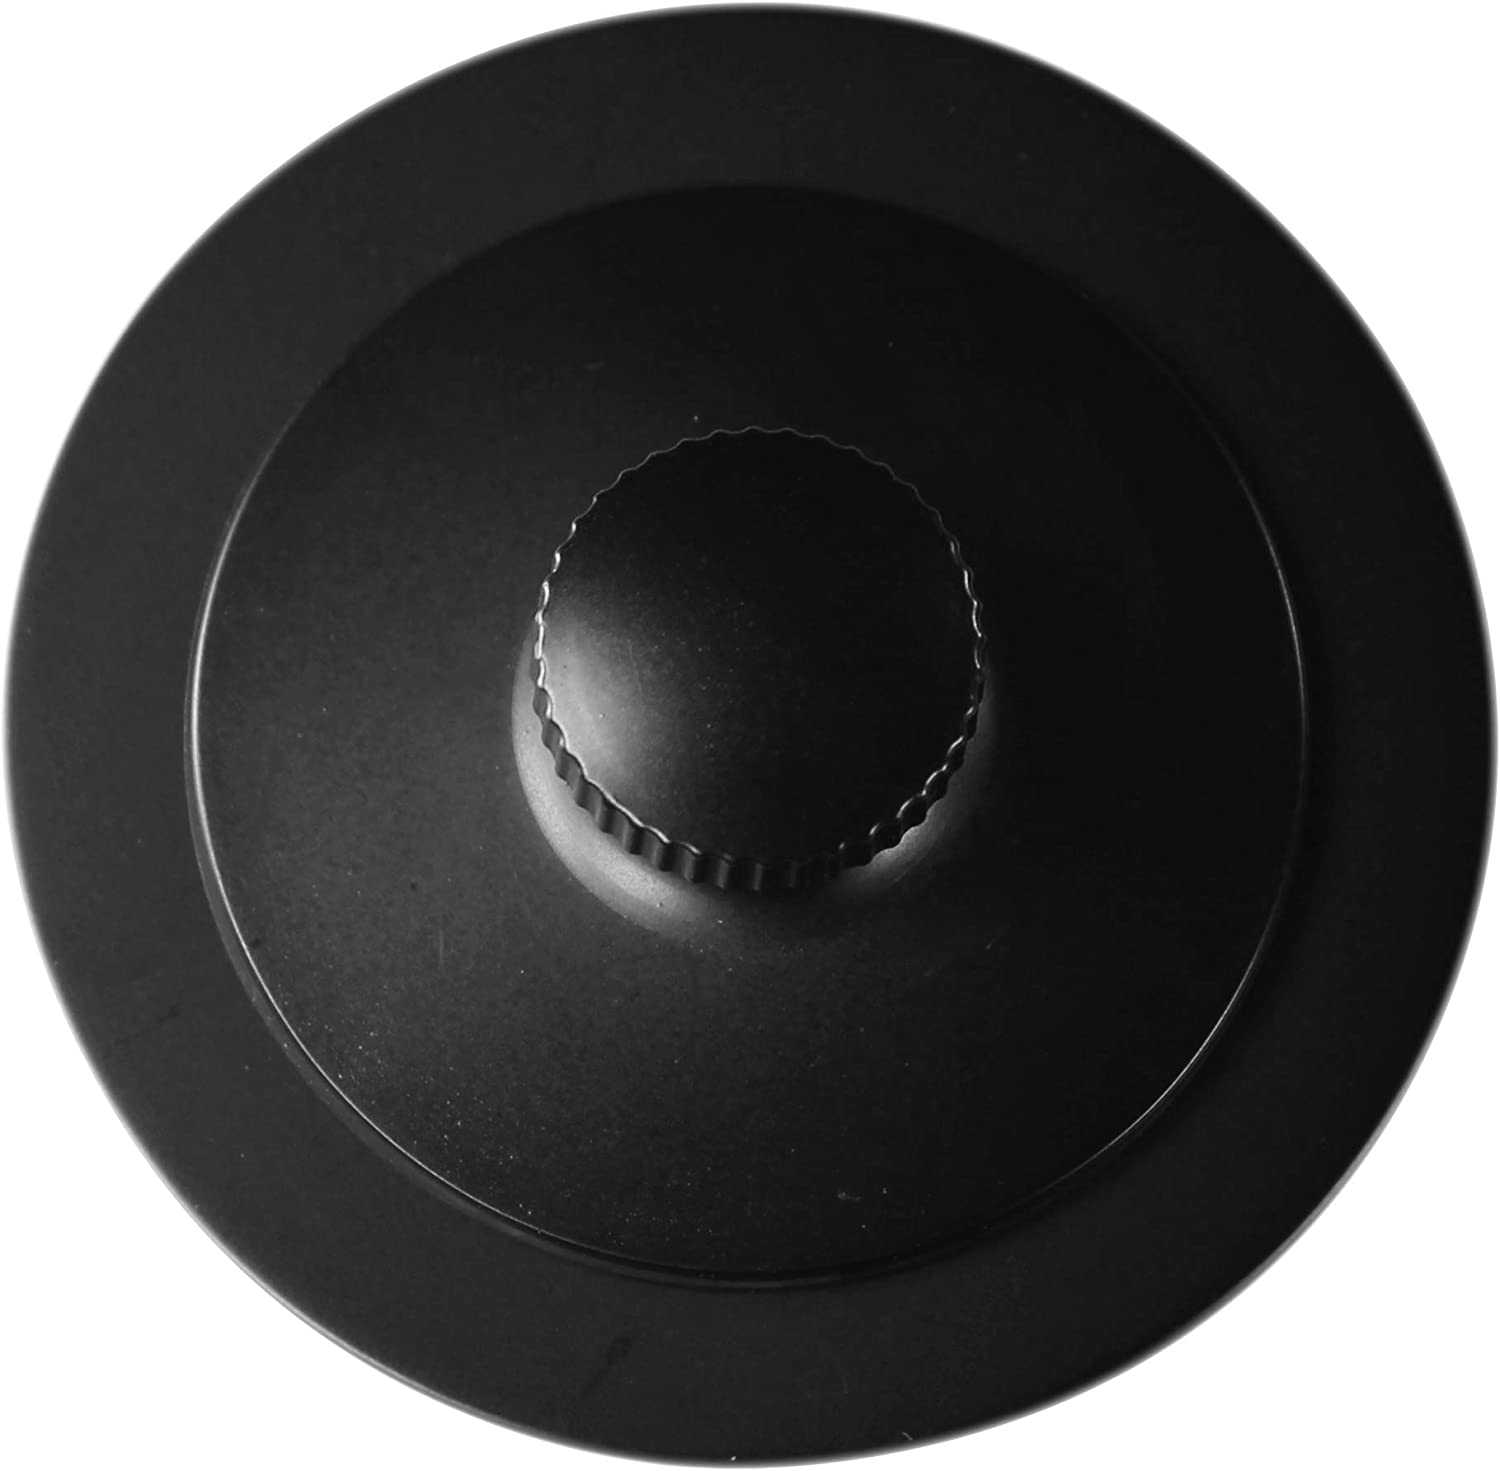 Westbrass Twist & Close Universal Tub Trim with 2-Hole Faceplate, Matte Black, D94K-62 - Drain Stoppers -